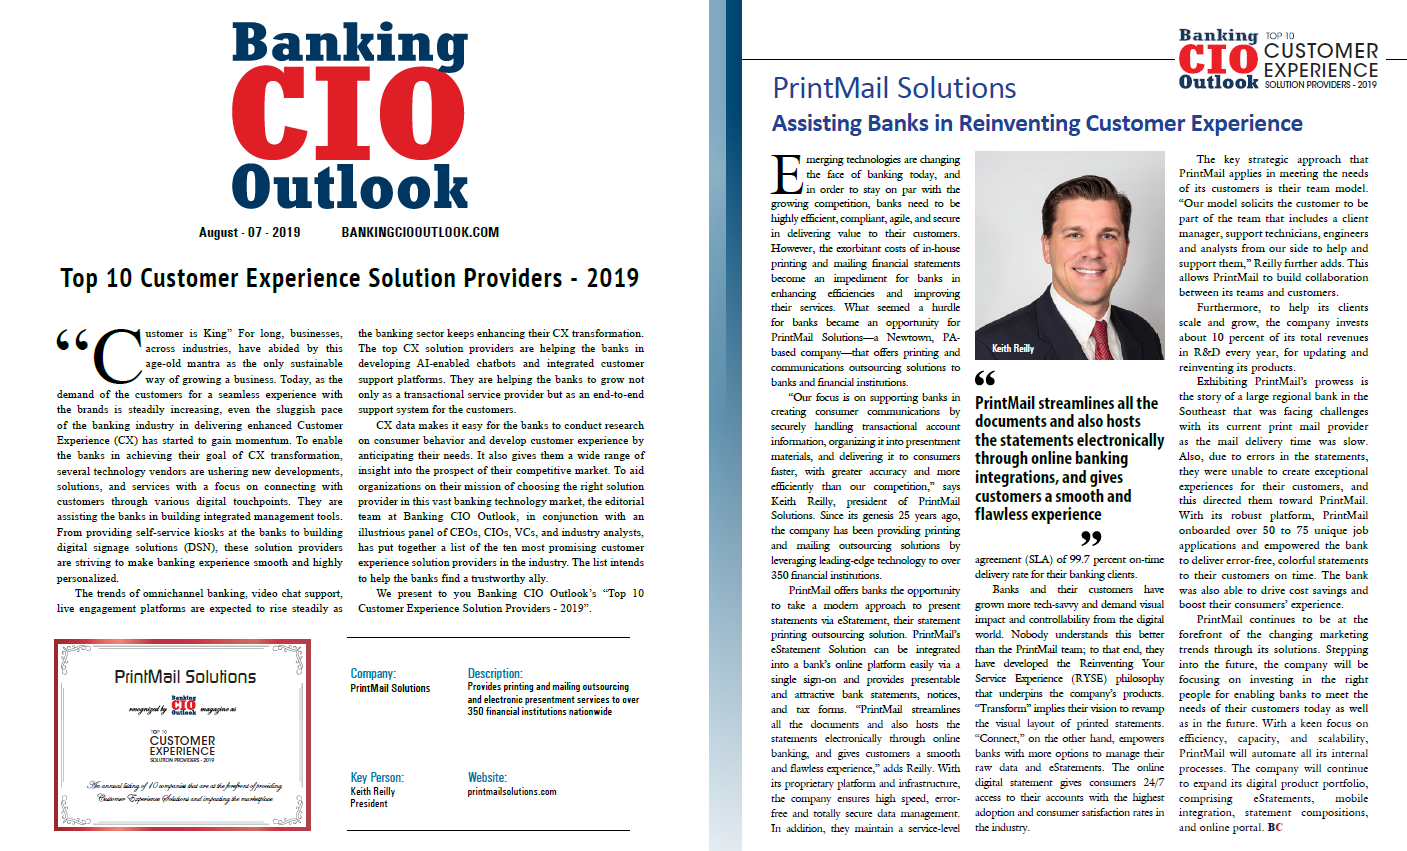 Banking CIO Article